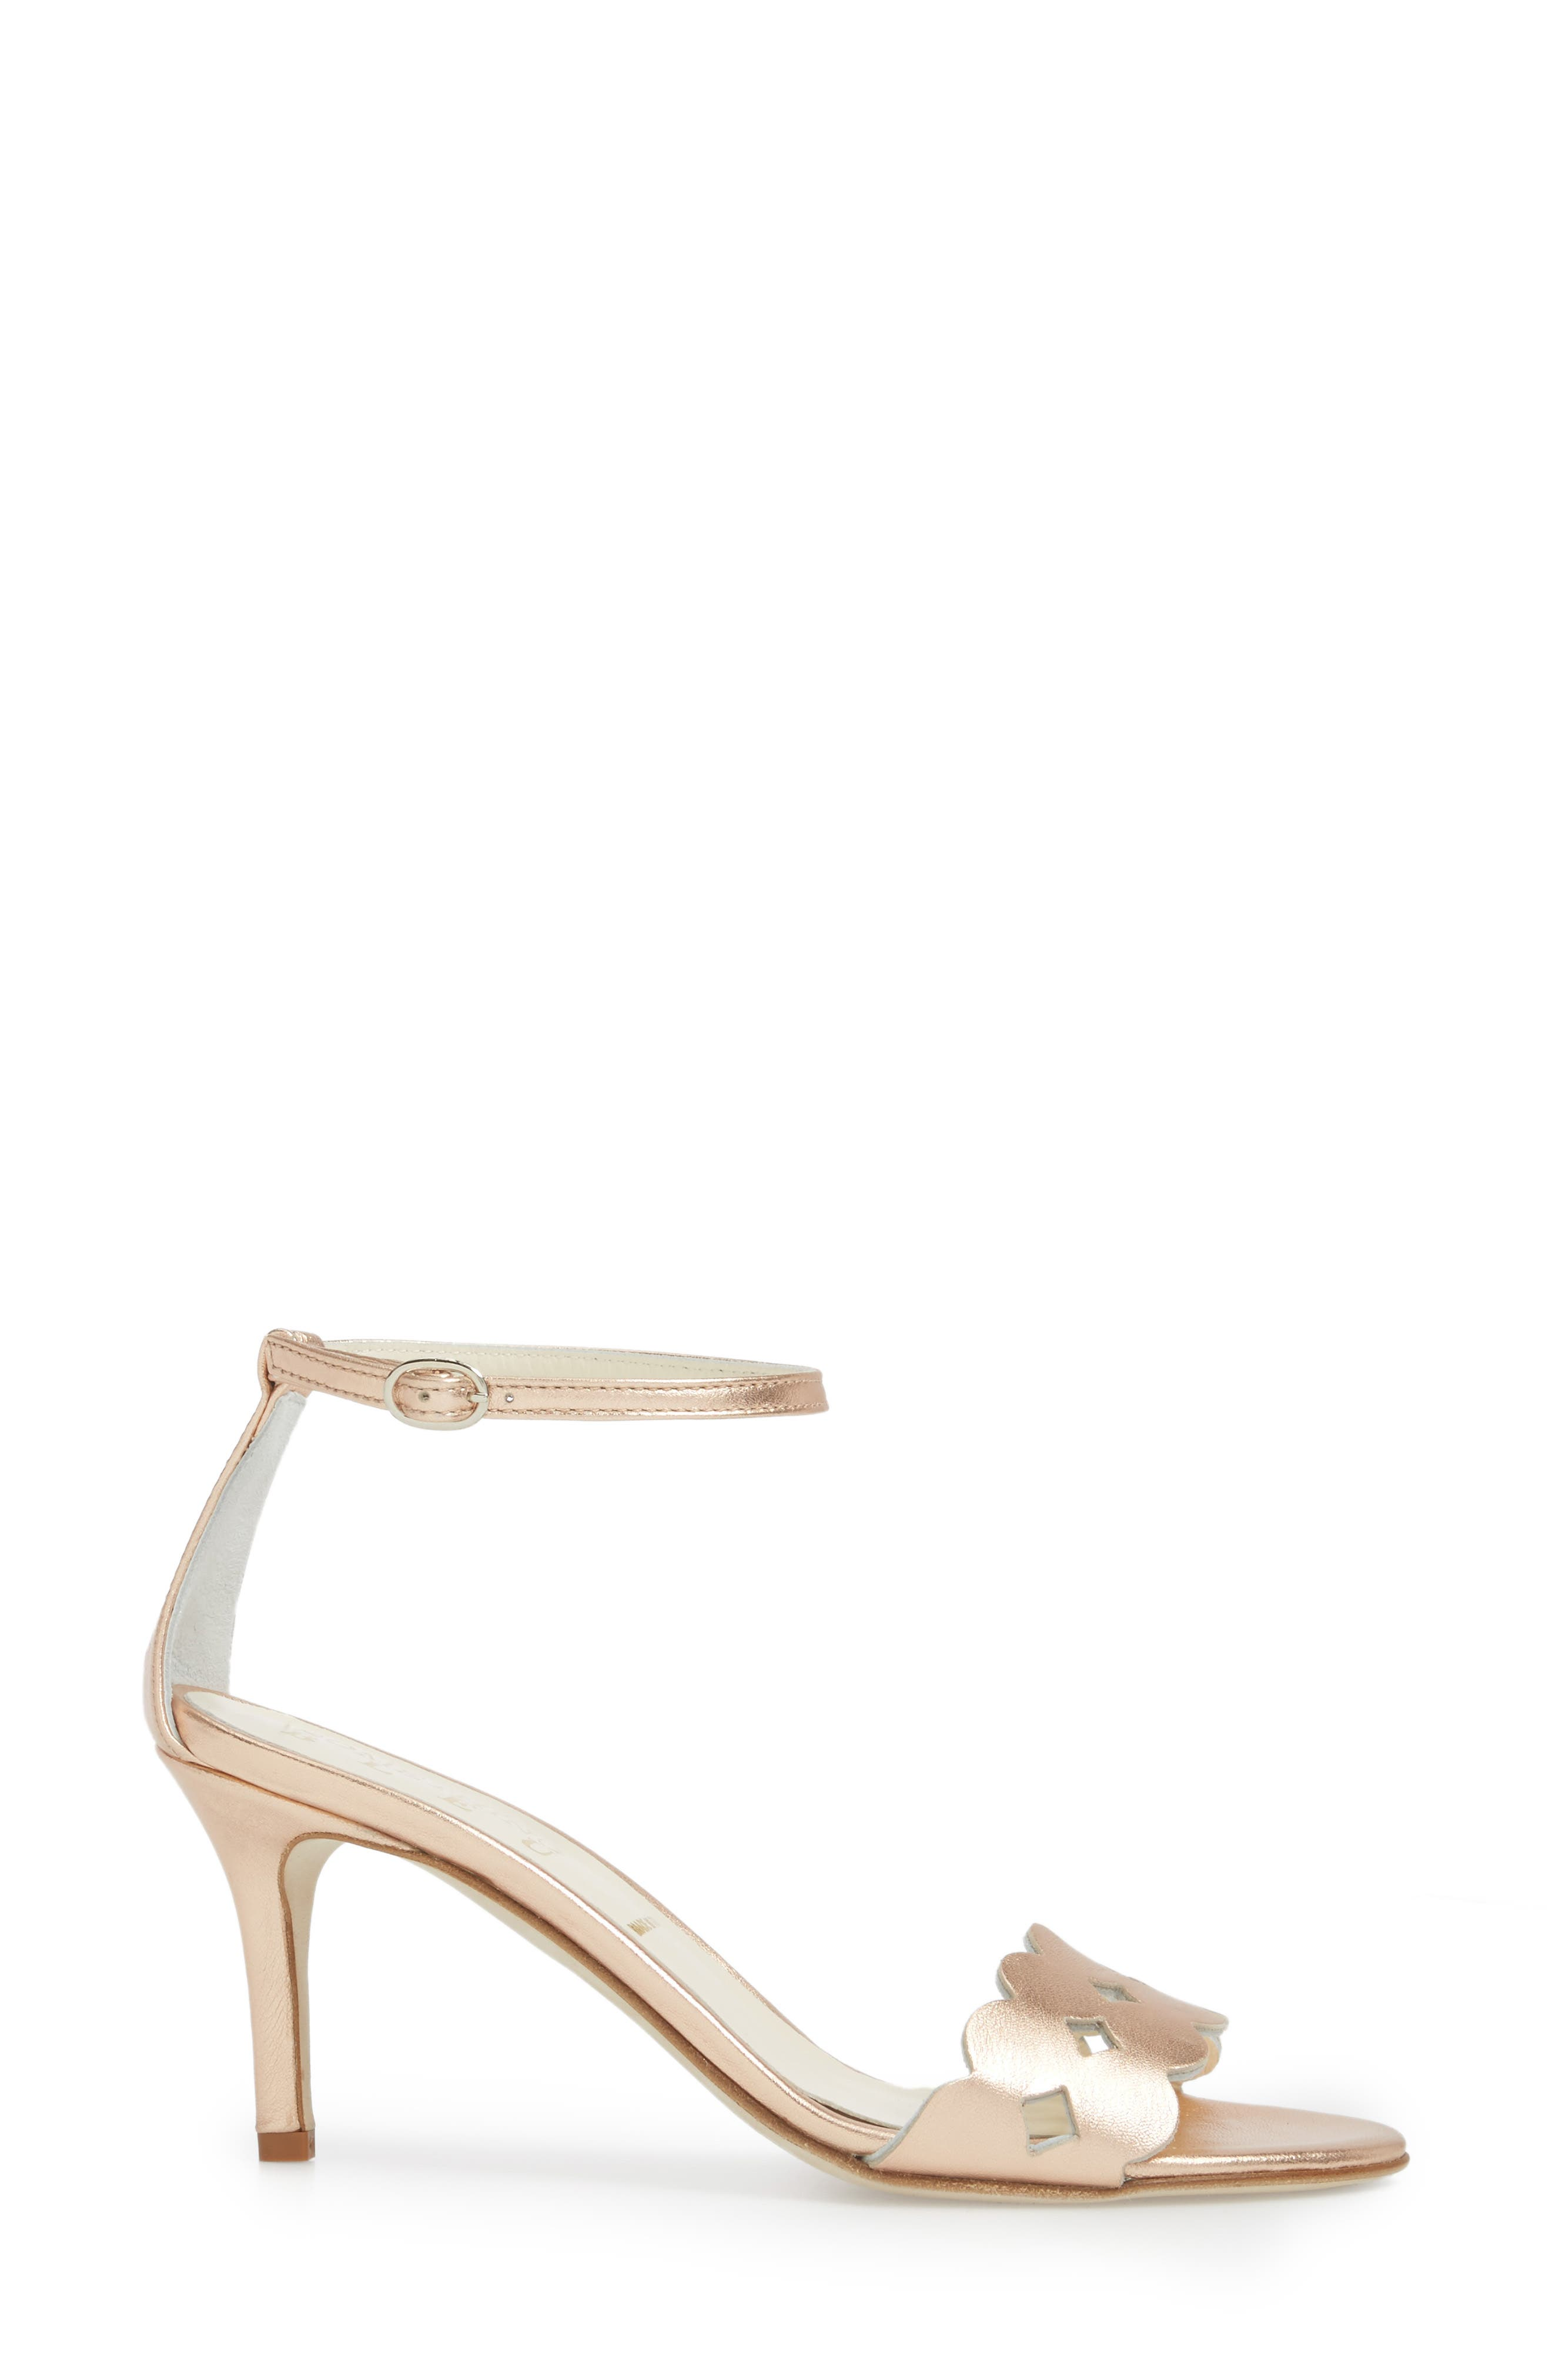 Gina Ankle Strap Sandal,                             Alternate thumbnail 3, color,                             Rose Gold Metallics